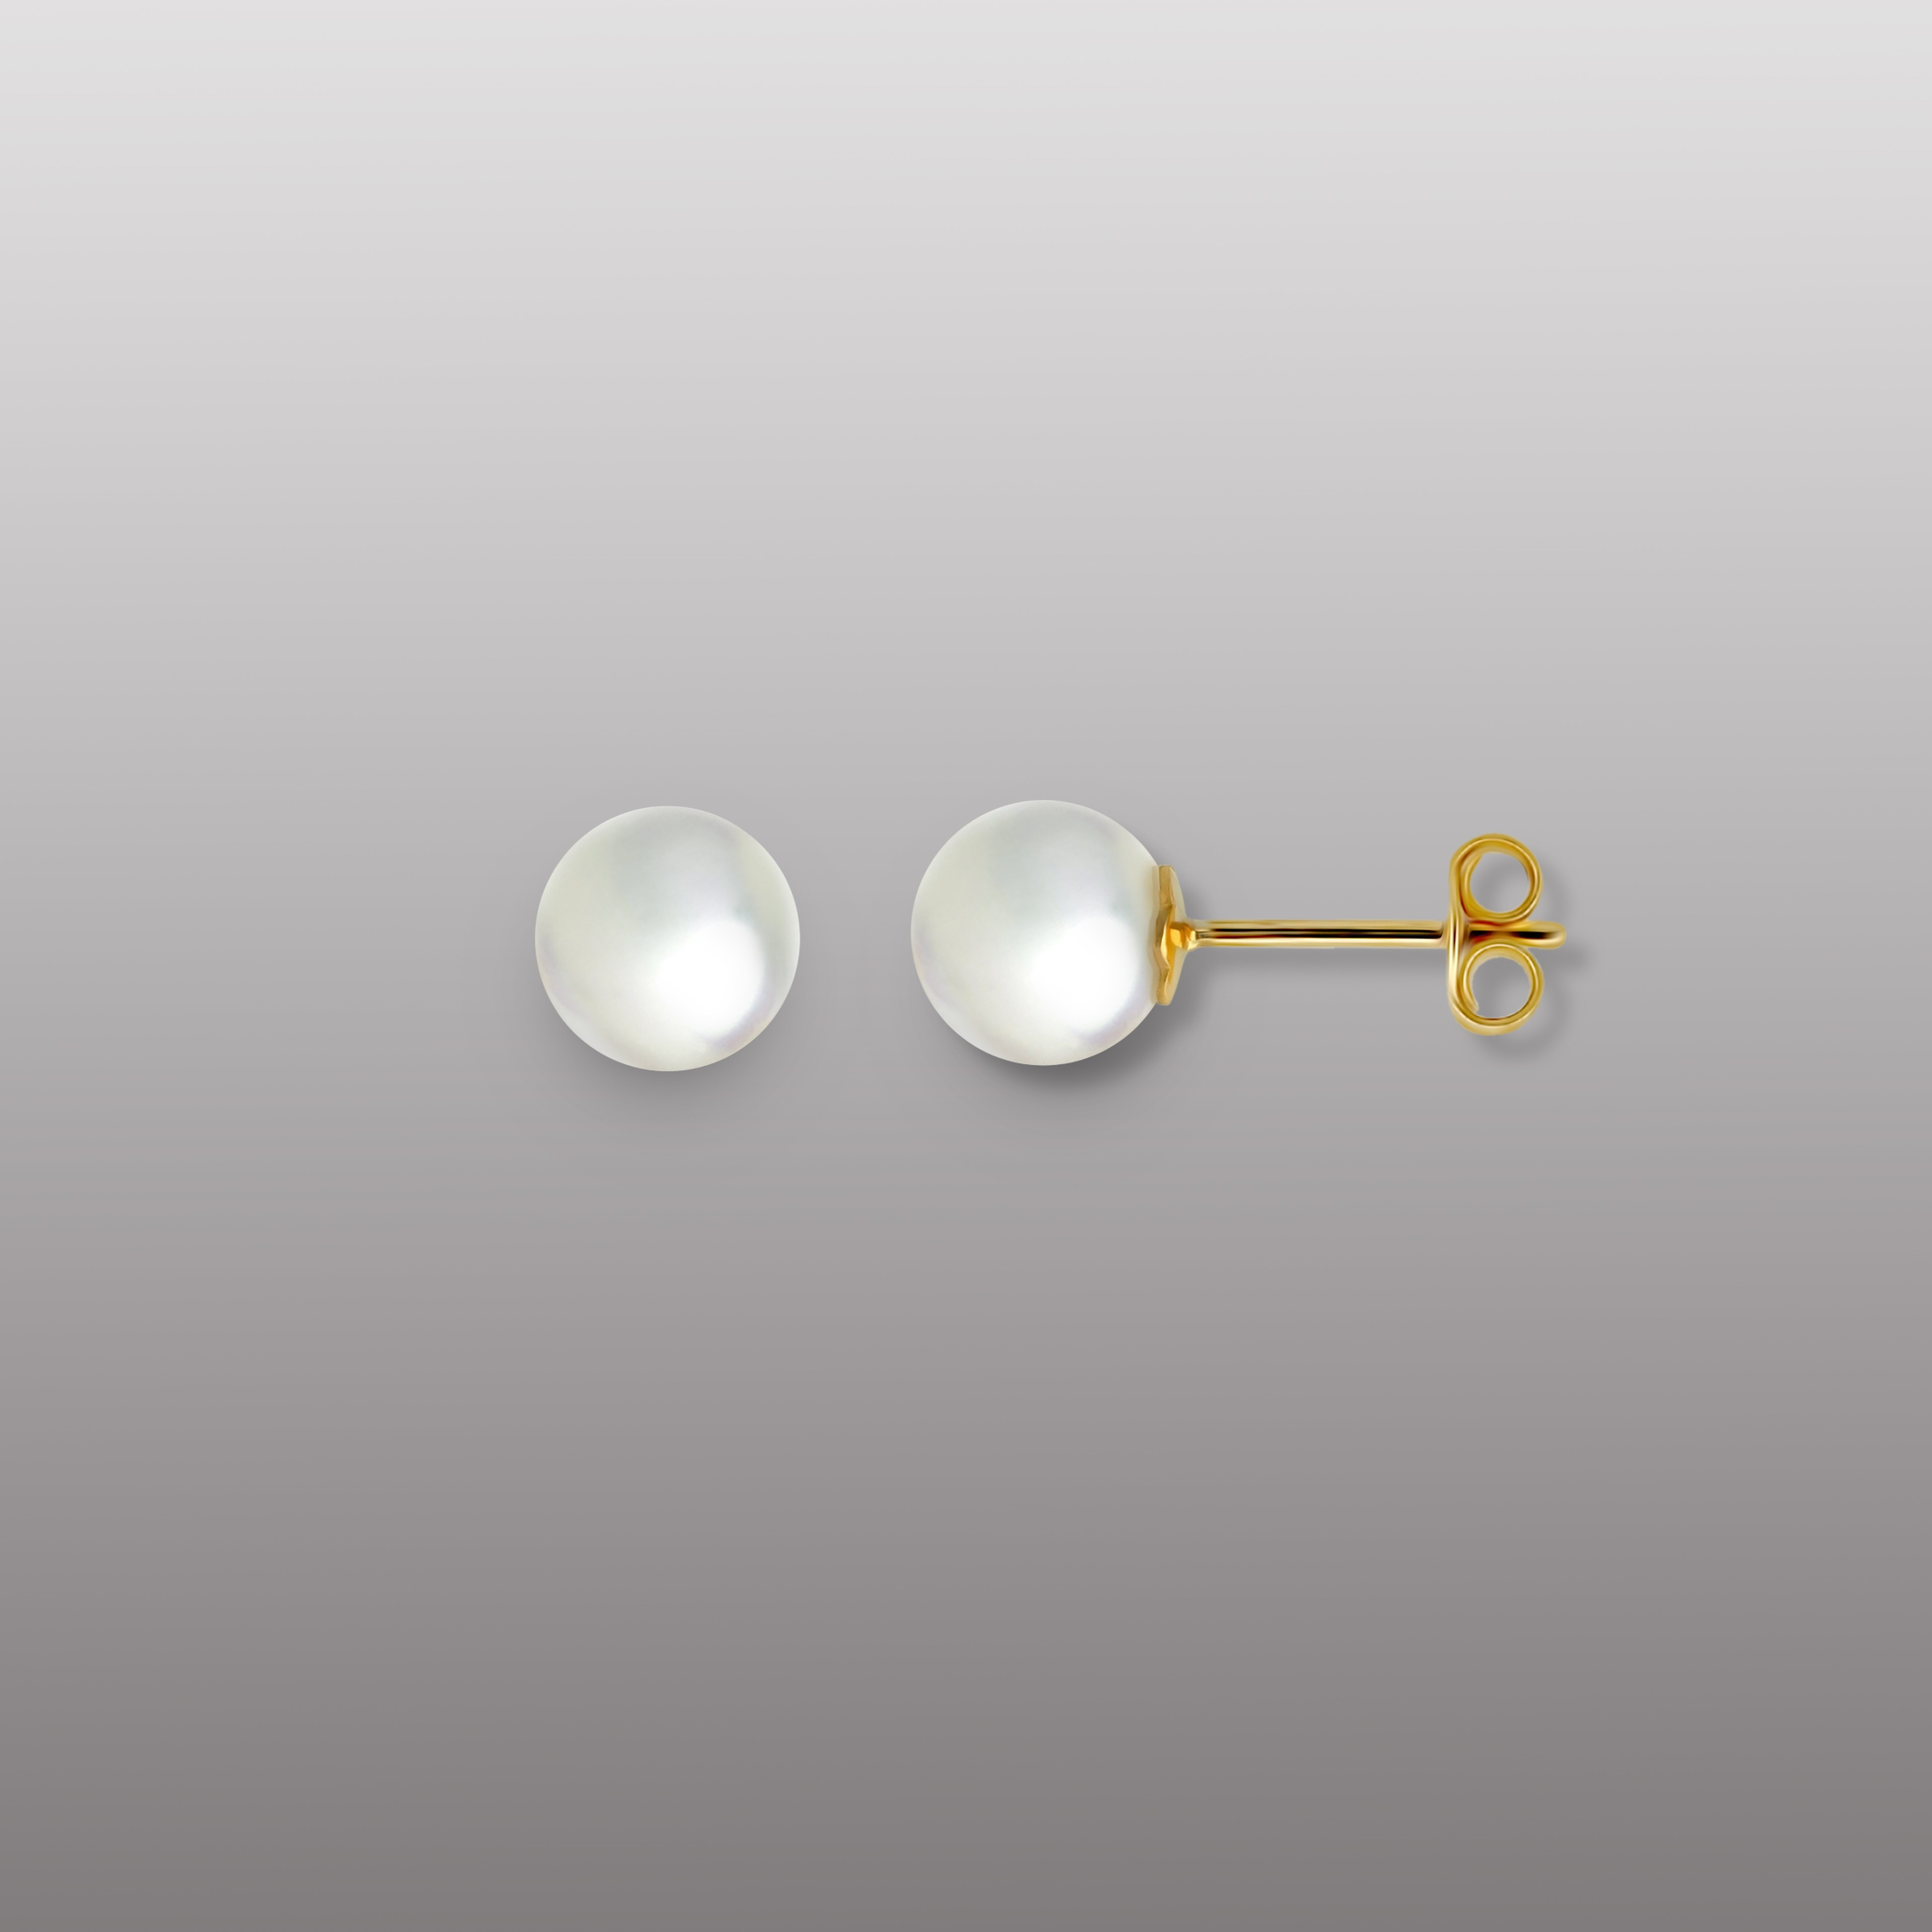 18K YELLOW GOLD PEARL EARRING STUD TYPE (8.50 - 9.50 mm) -RD1910E(9)